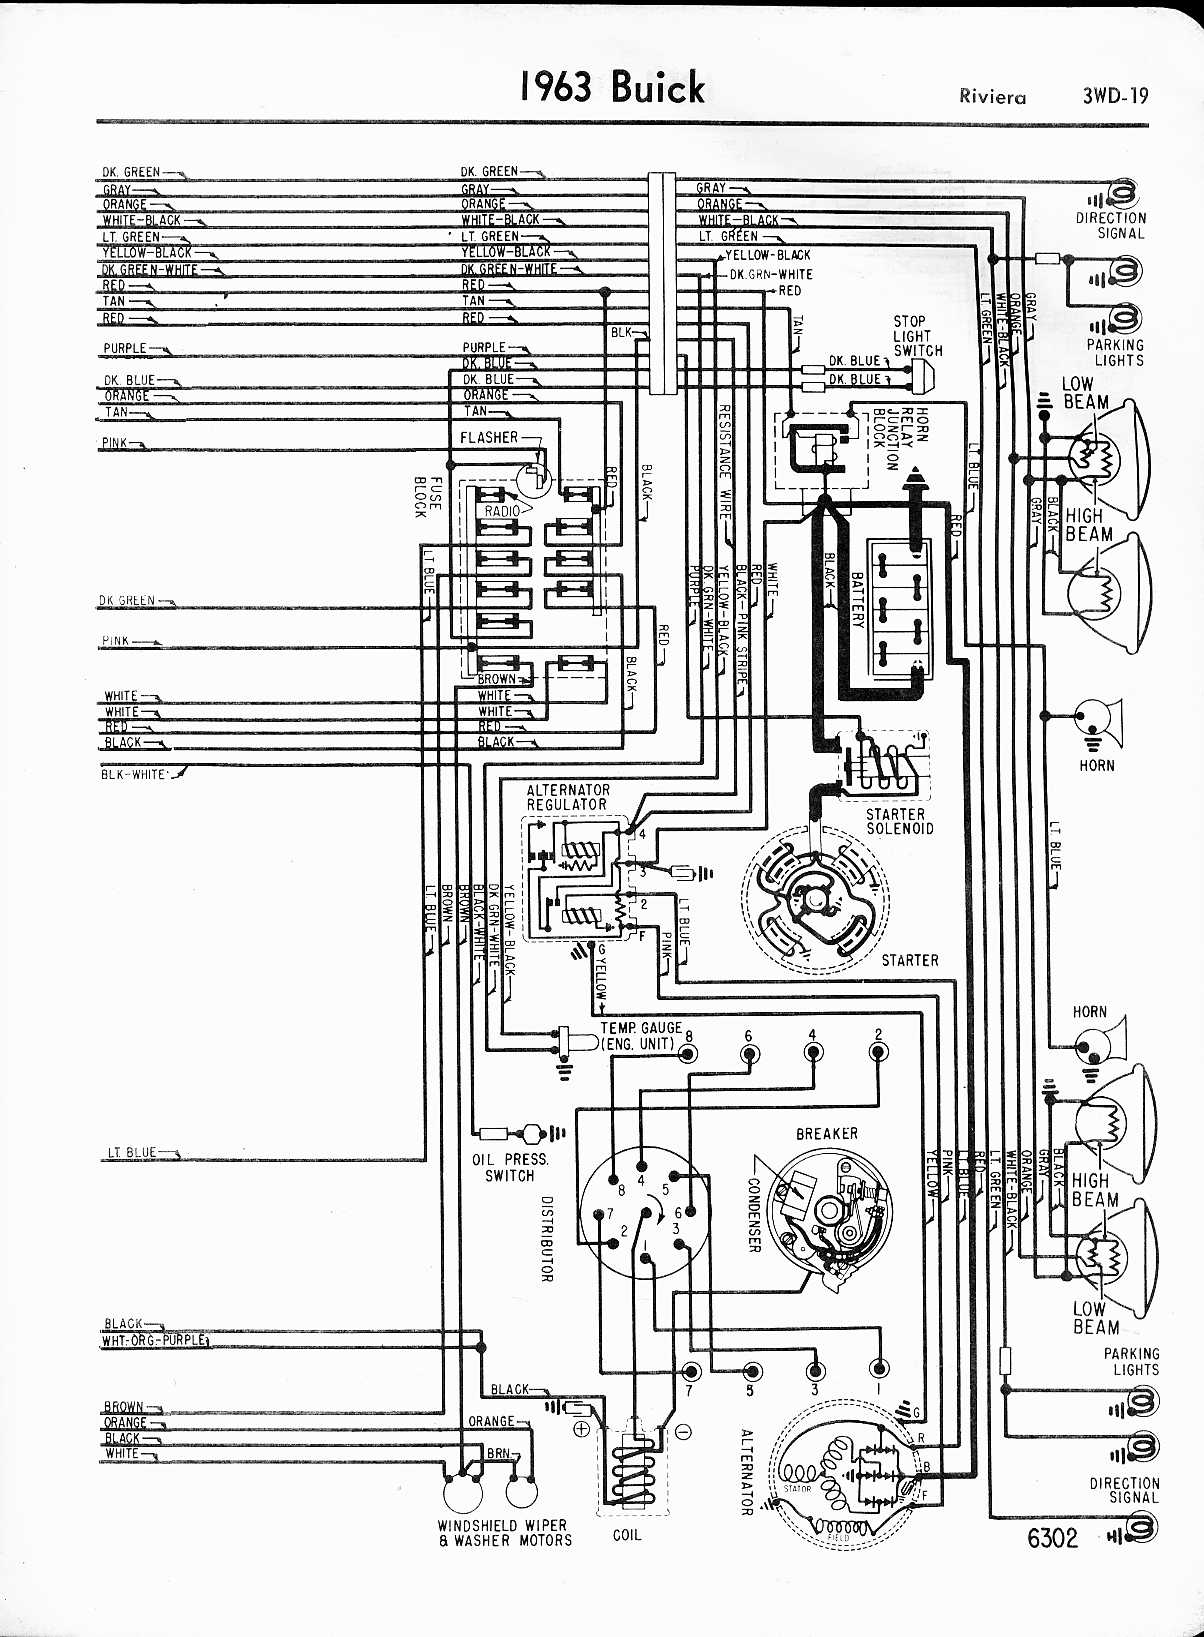 buick wiring diagrams 1957 1965 1963 riviera right half